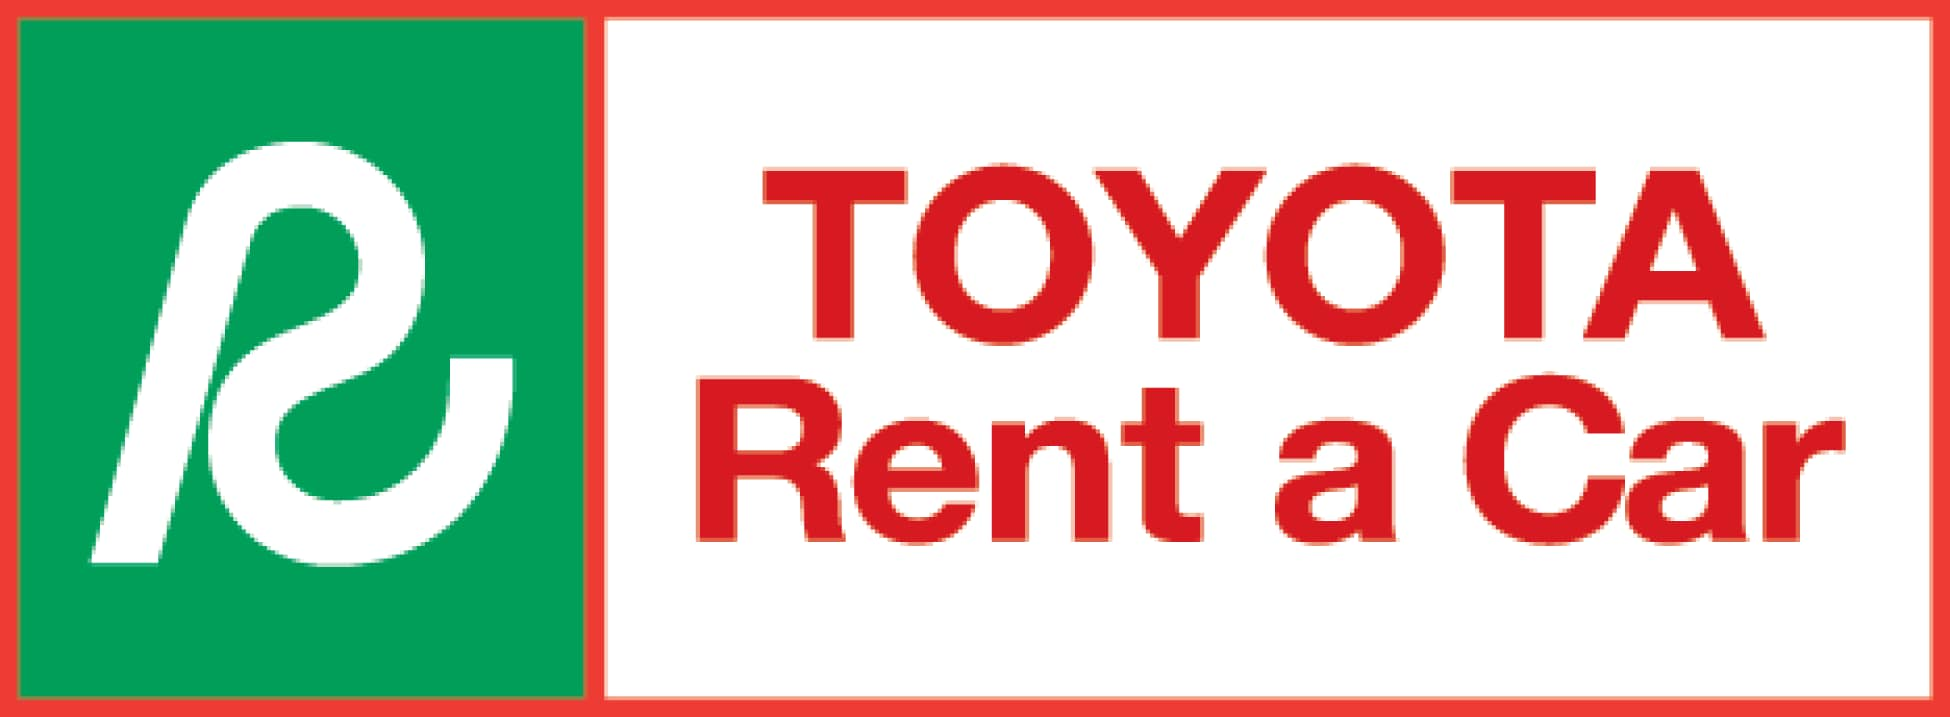 Toyota Rental Vehicles